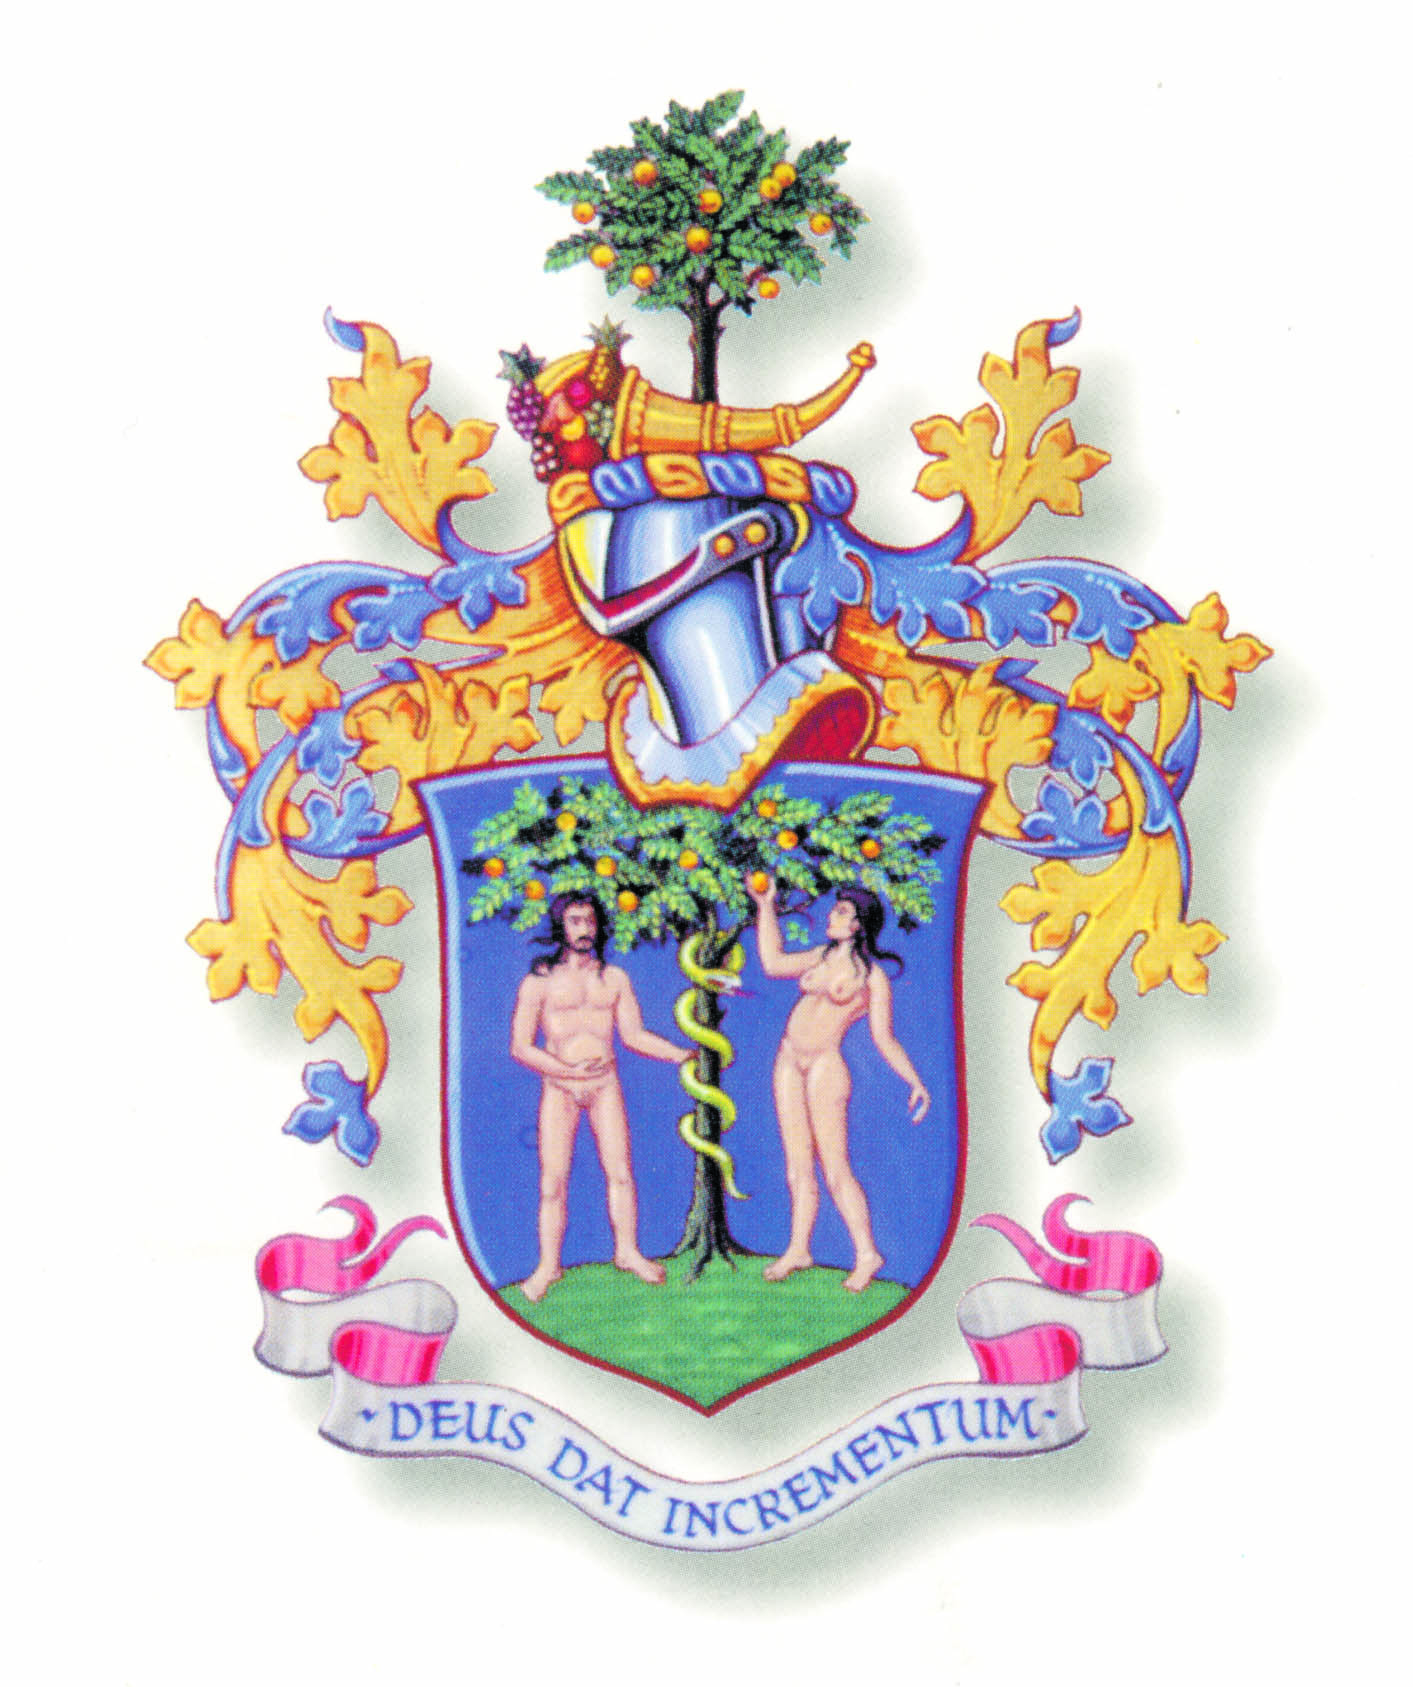 THE WORSHIPFUL COMPANY OF FRUITERERS